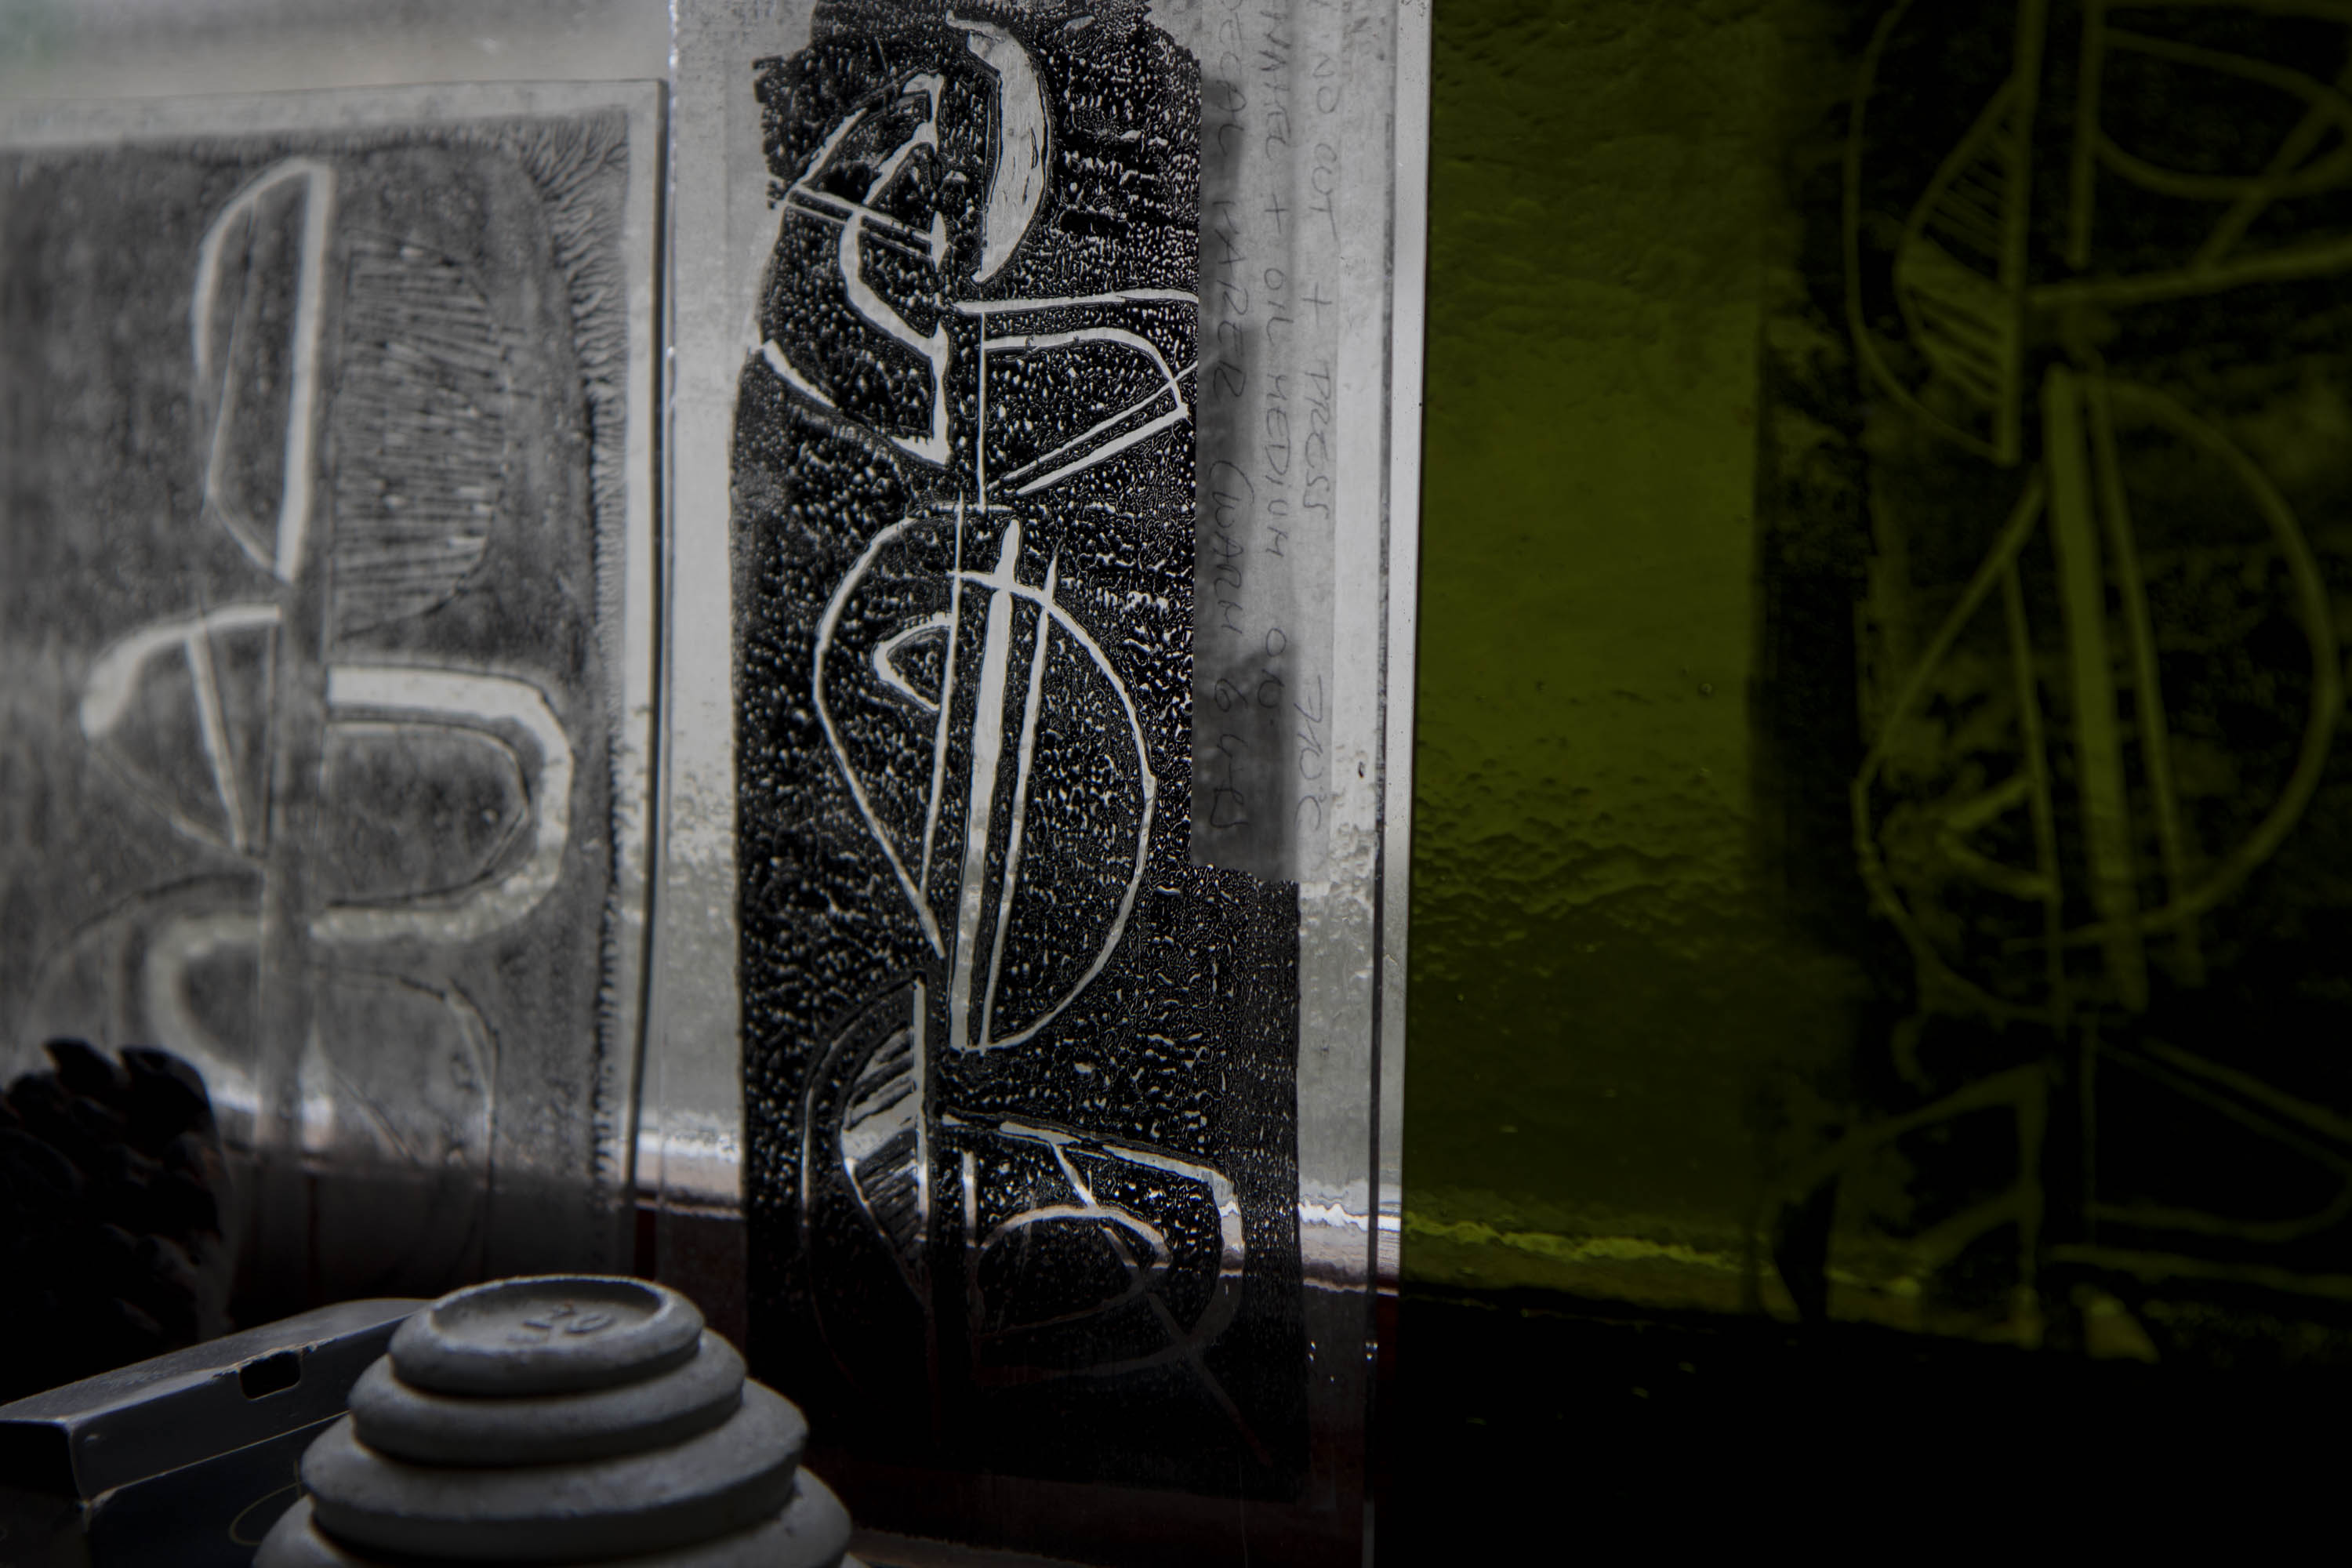 Three linocut prints on glass against a window. The ink is black and shows a reversed-out curvilinear motif. One piece of glass is limey yellow-green